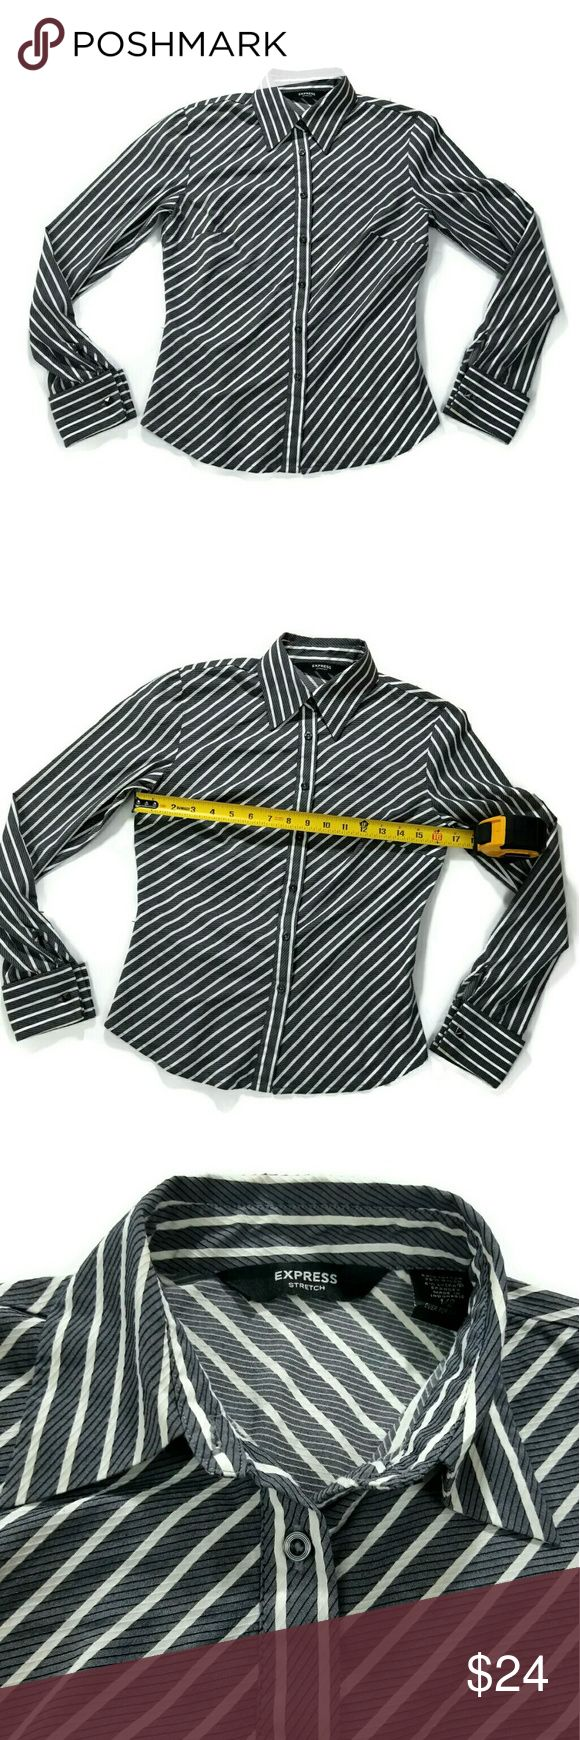 💥MAKE OFFER💥Express womens button up Great condition. Size 1/2. 59% cotton, 35% nylon, 6% lycra spandex. Stretchable fabric. Color gray with white stripes. Comes with cufflinks, refer to 4th picture. Express Tops Button Down Shirts